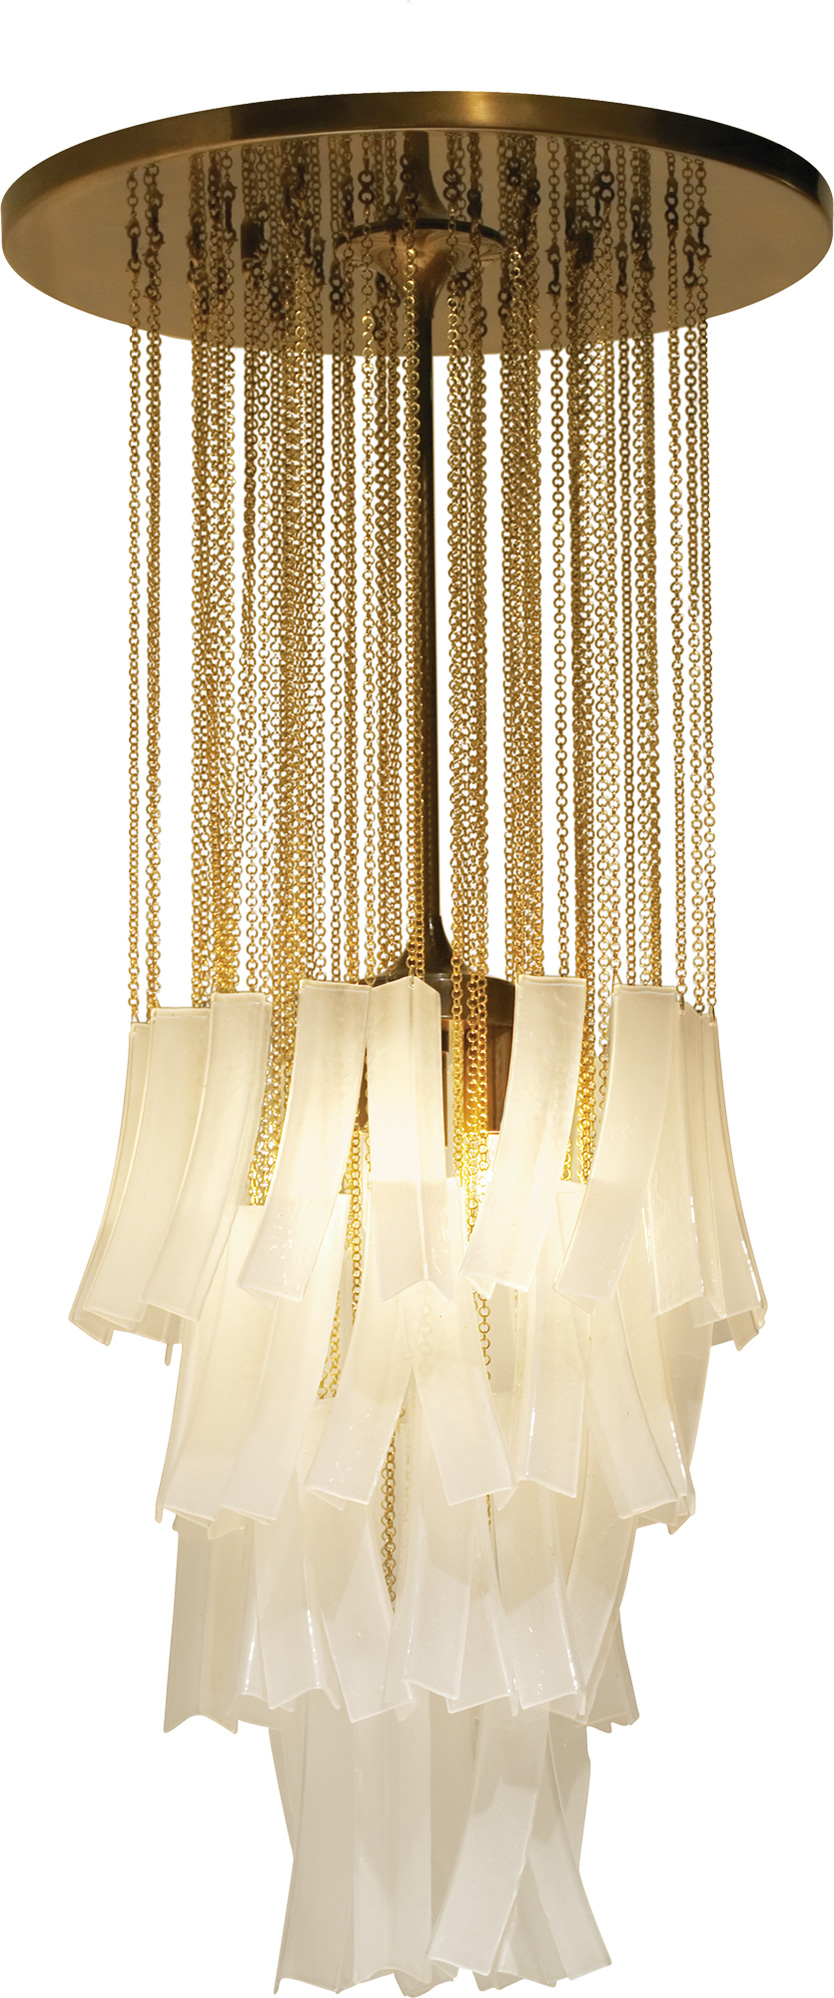 SILICATE CHANDELIER